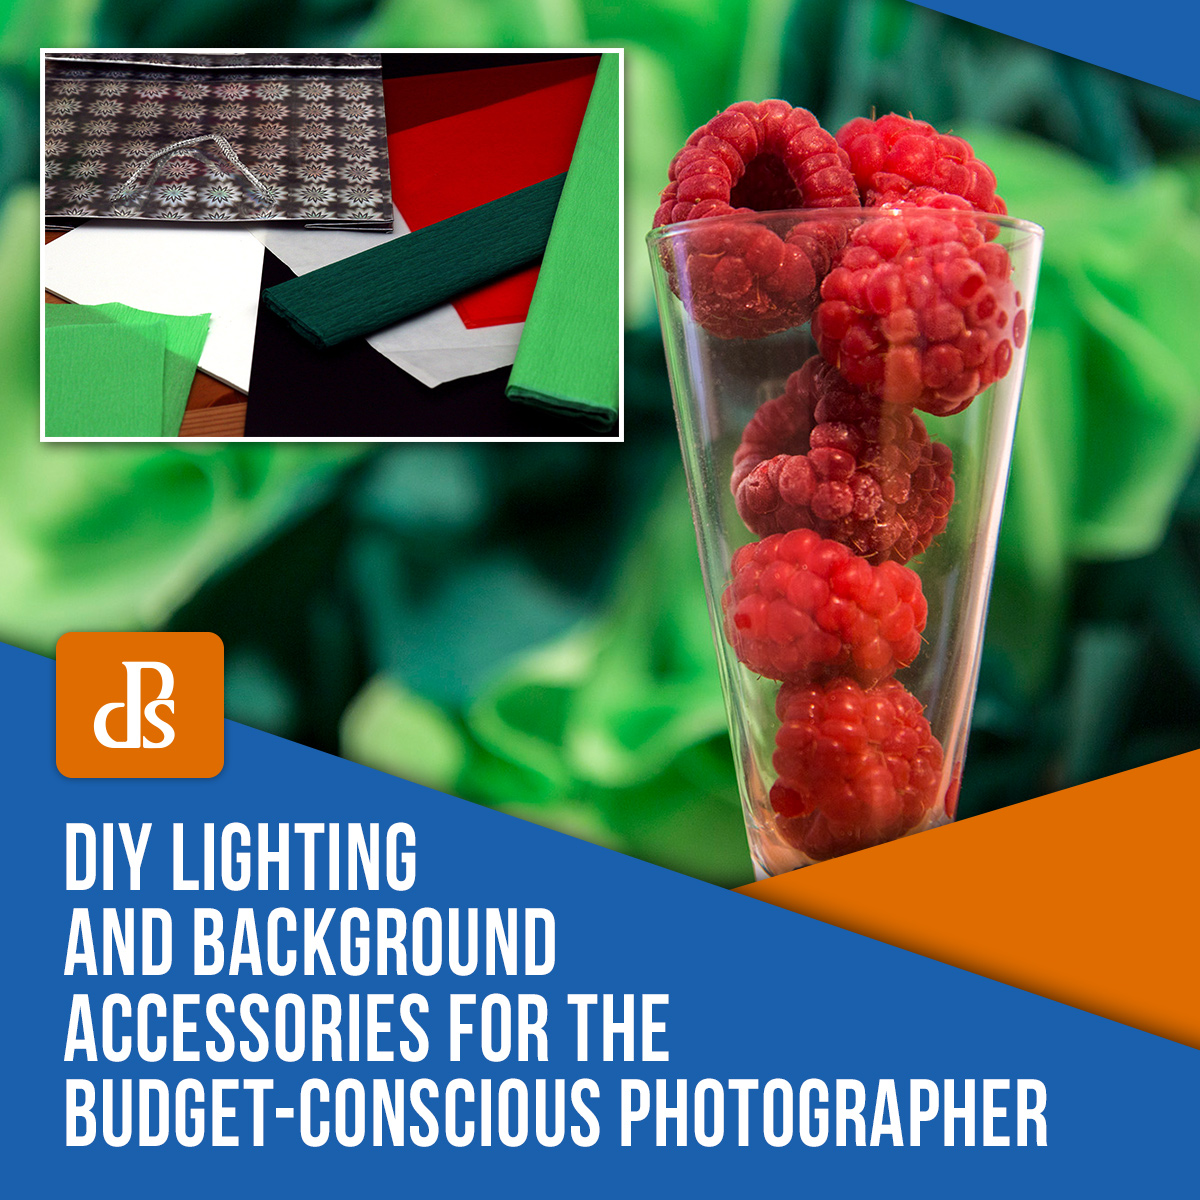 https://i1.wp.com/digital-photography-school.com/wp-content/uploads/2020/02/dps-diy-lighting-and-background-accessories-feature.jpg?resize=1200%2C1200&ssl=1